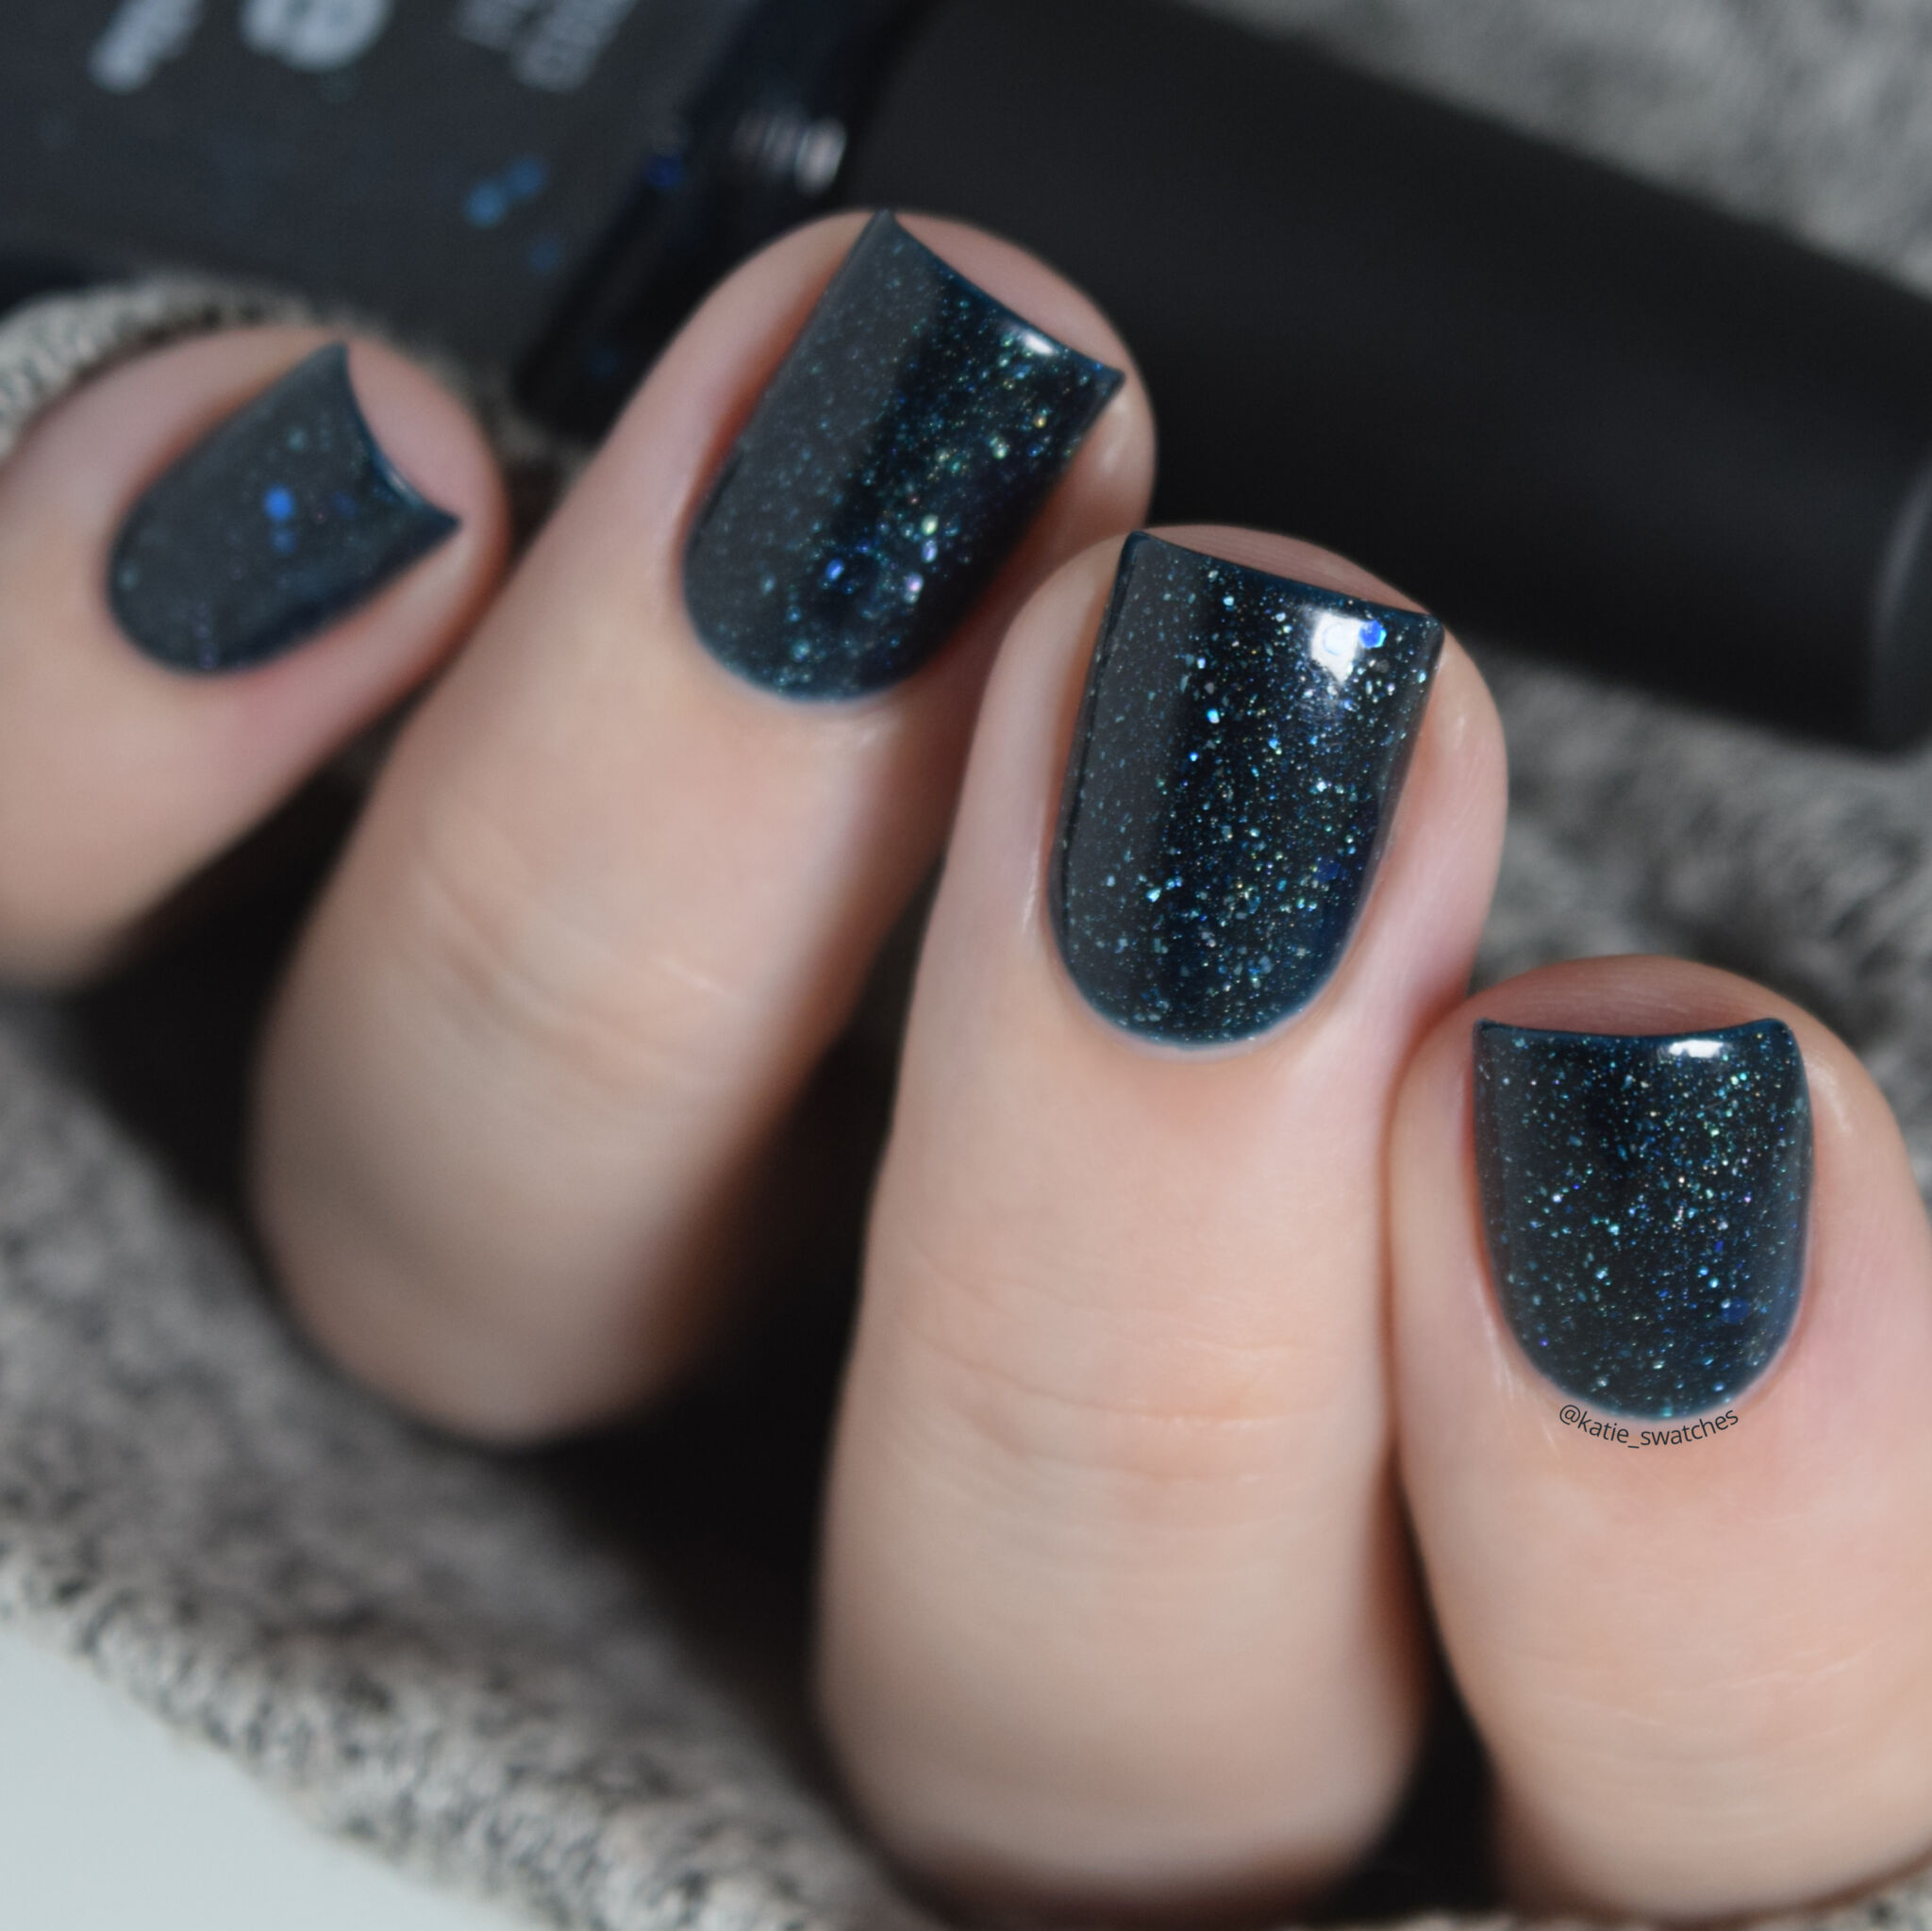 Picture Polish - Hope dark blue/green teal jelly scattered holographic nail polish swatch. Collaboration nail polish with Vernis en Folie in 2013.